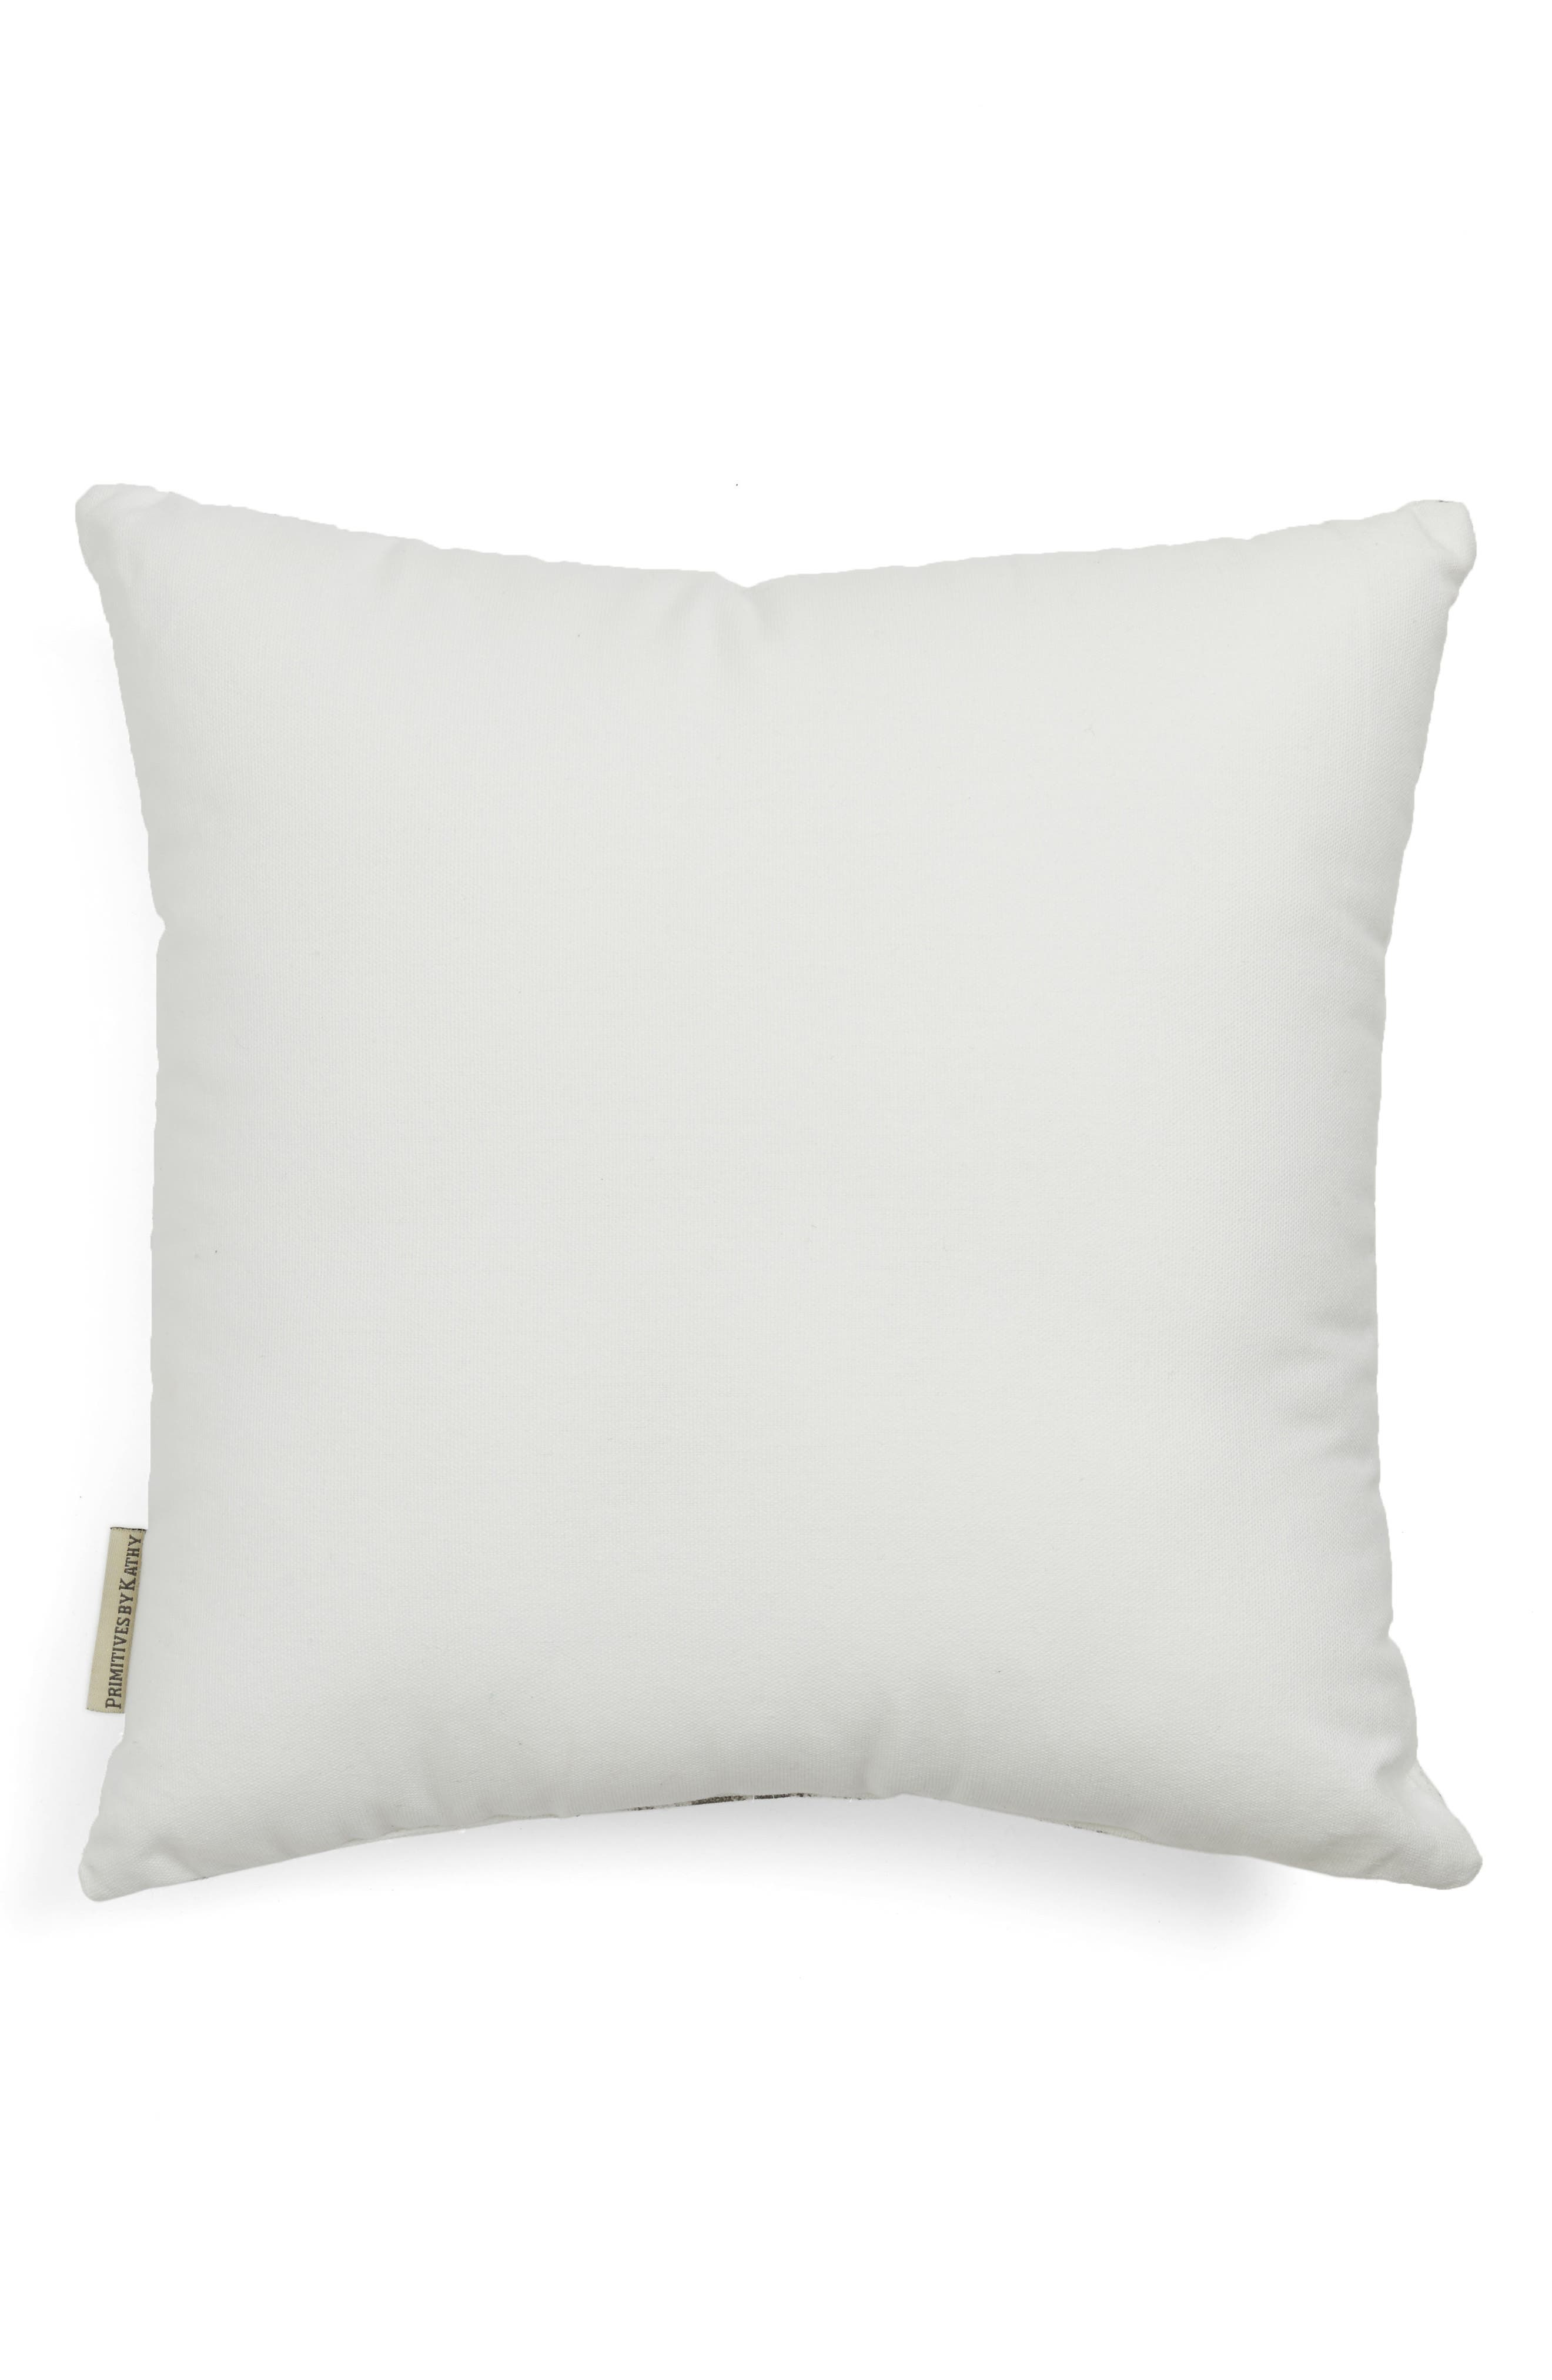 Merry Christmas Accent Pillow,                             Alternate thumbnail 2, color,                             Grey